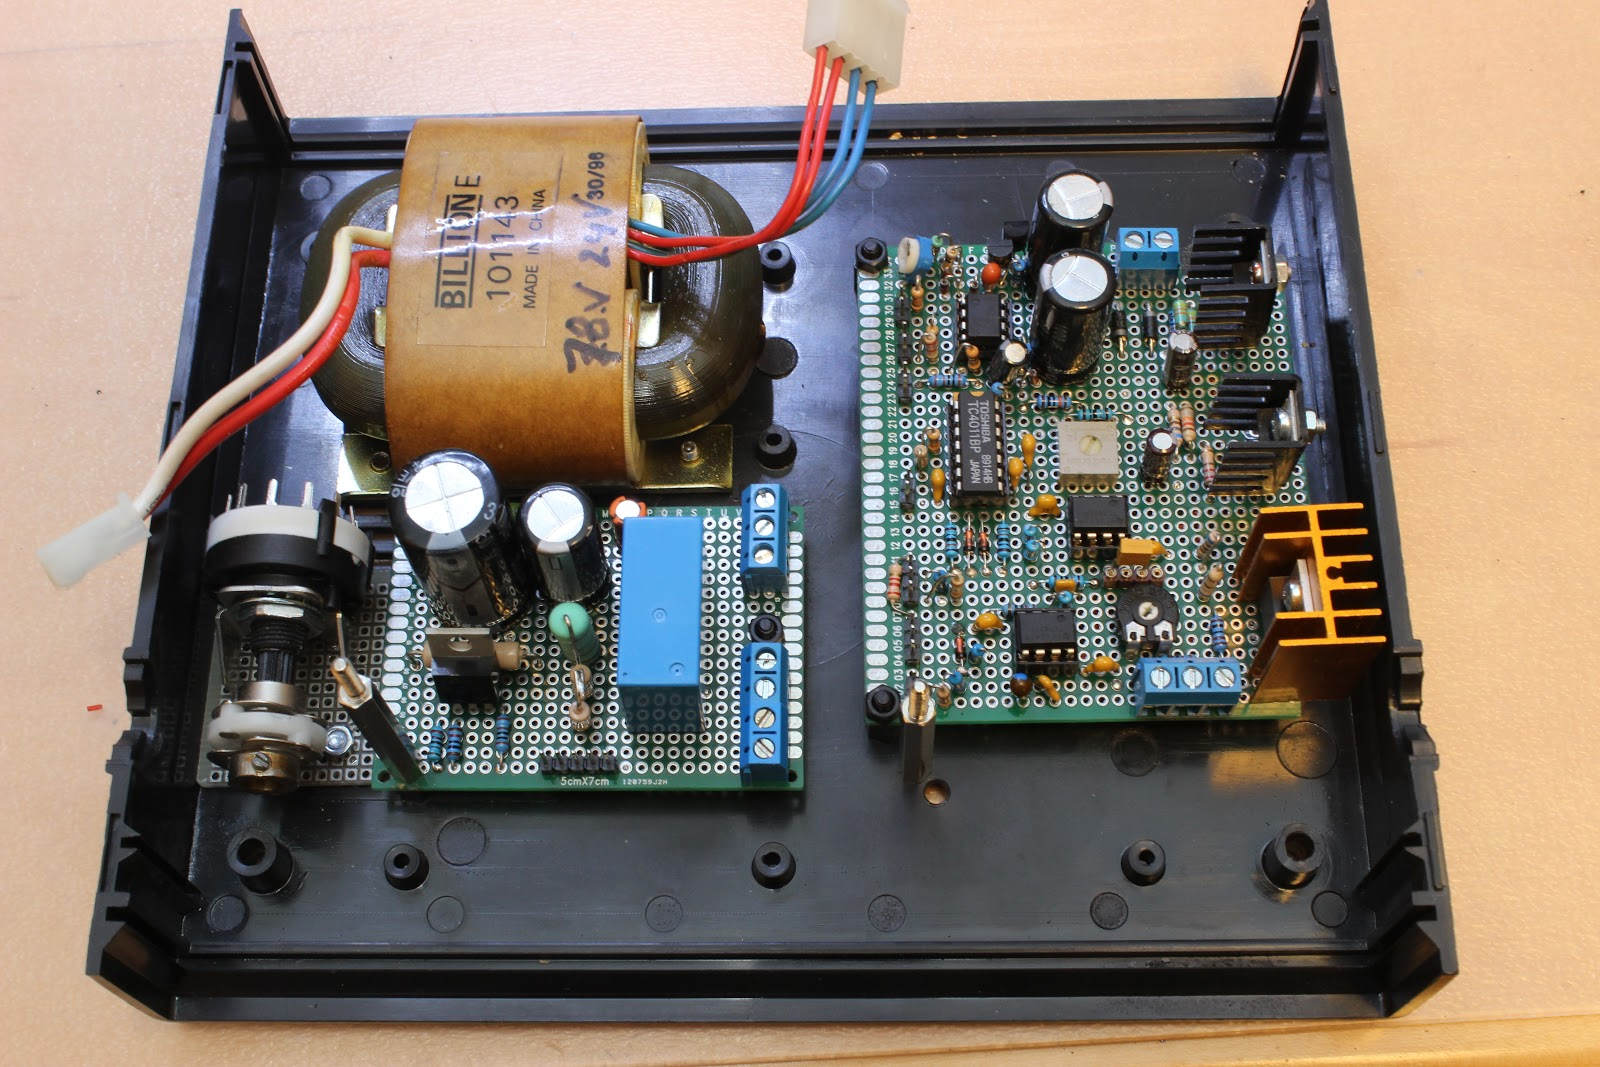 Pauls Diy Electronics Blog Building Another Curve Tracer Circuits 8085 Projects Archive Analog Oscilloscope Circuit Here Is A Picture That Shows How I Will Add The Board Space Required For Front Panel Like X Y Amplifiers Im Going To Populate